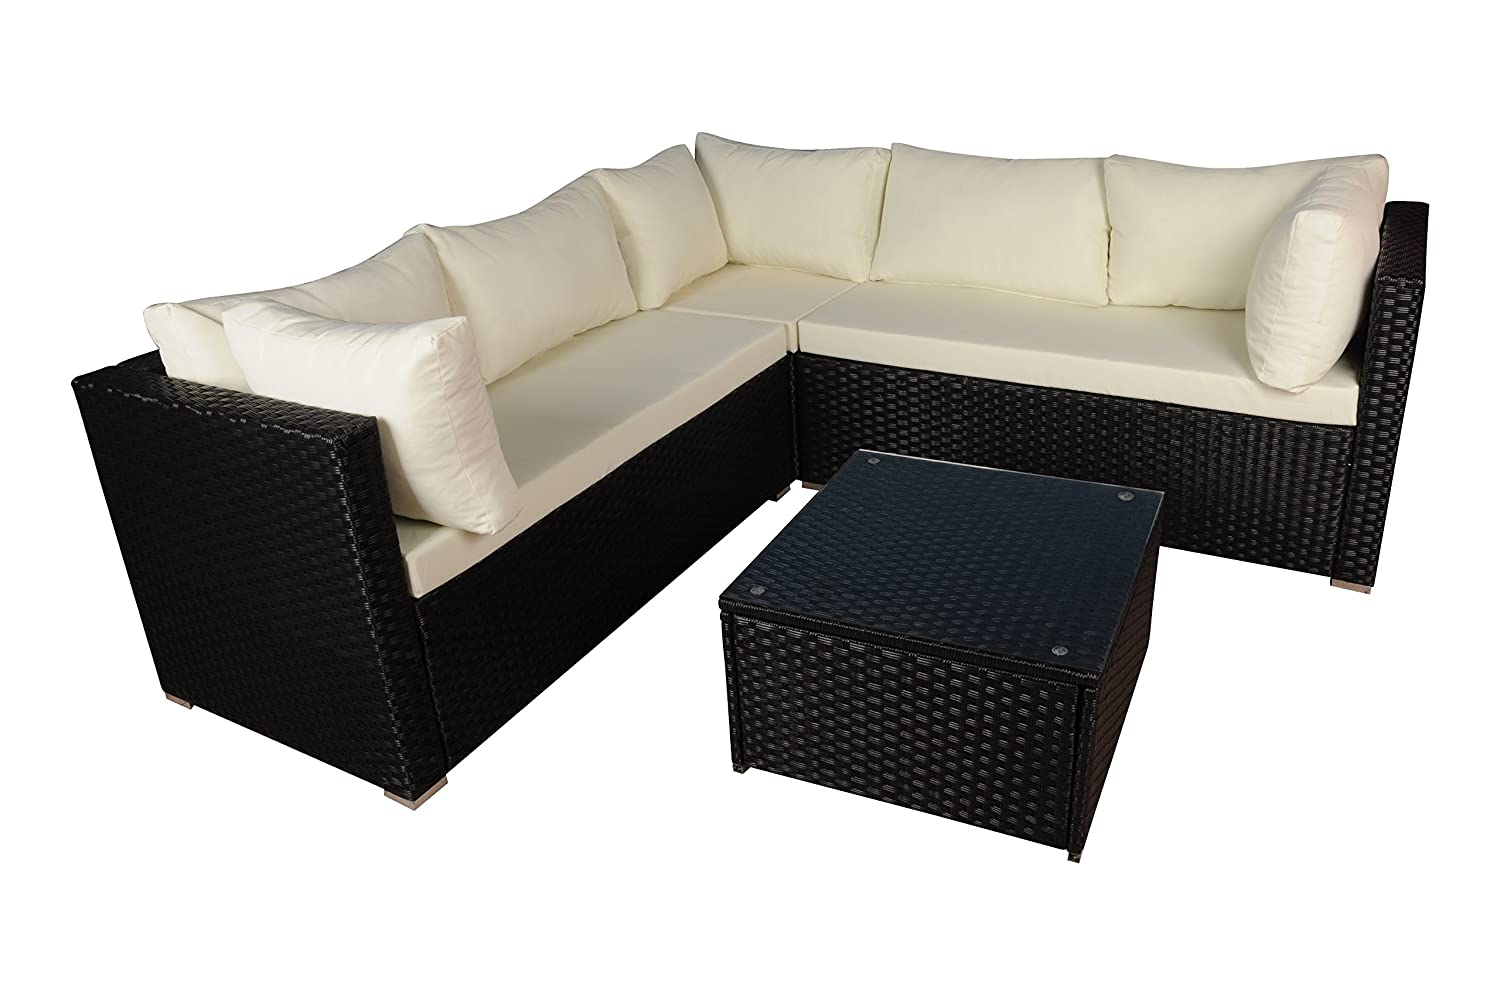 Amazon.com : Modern Outdoor Garden, Sectional Sofa Set with ...